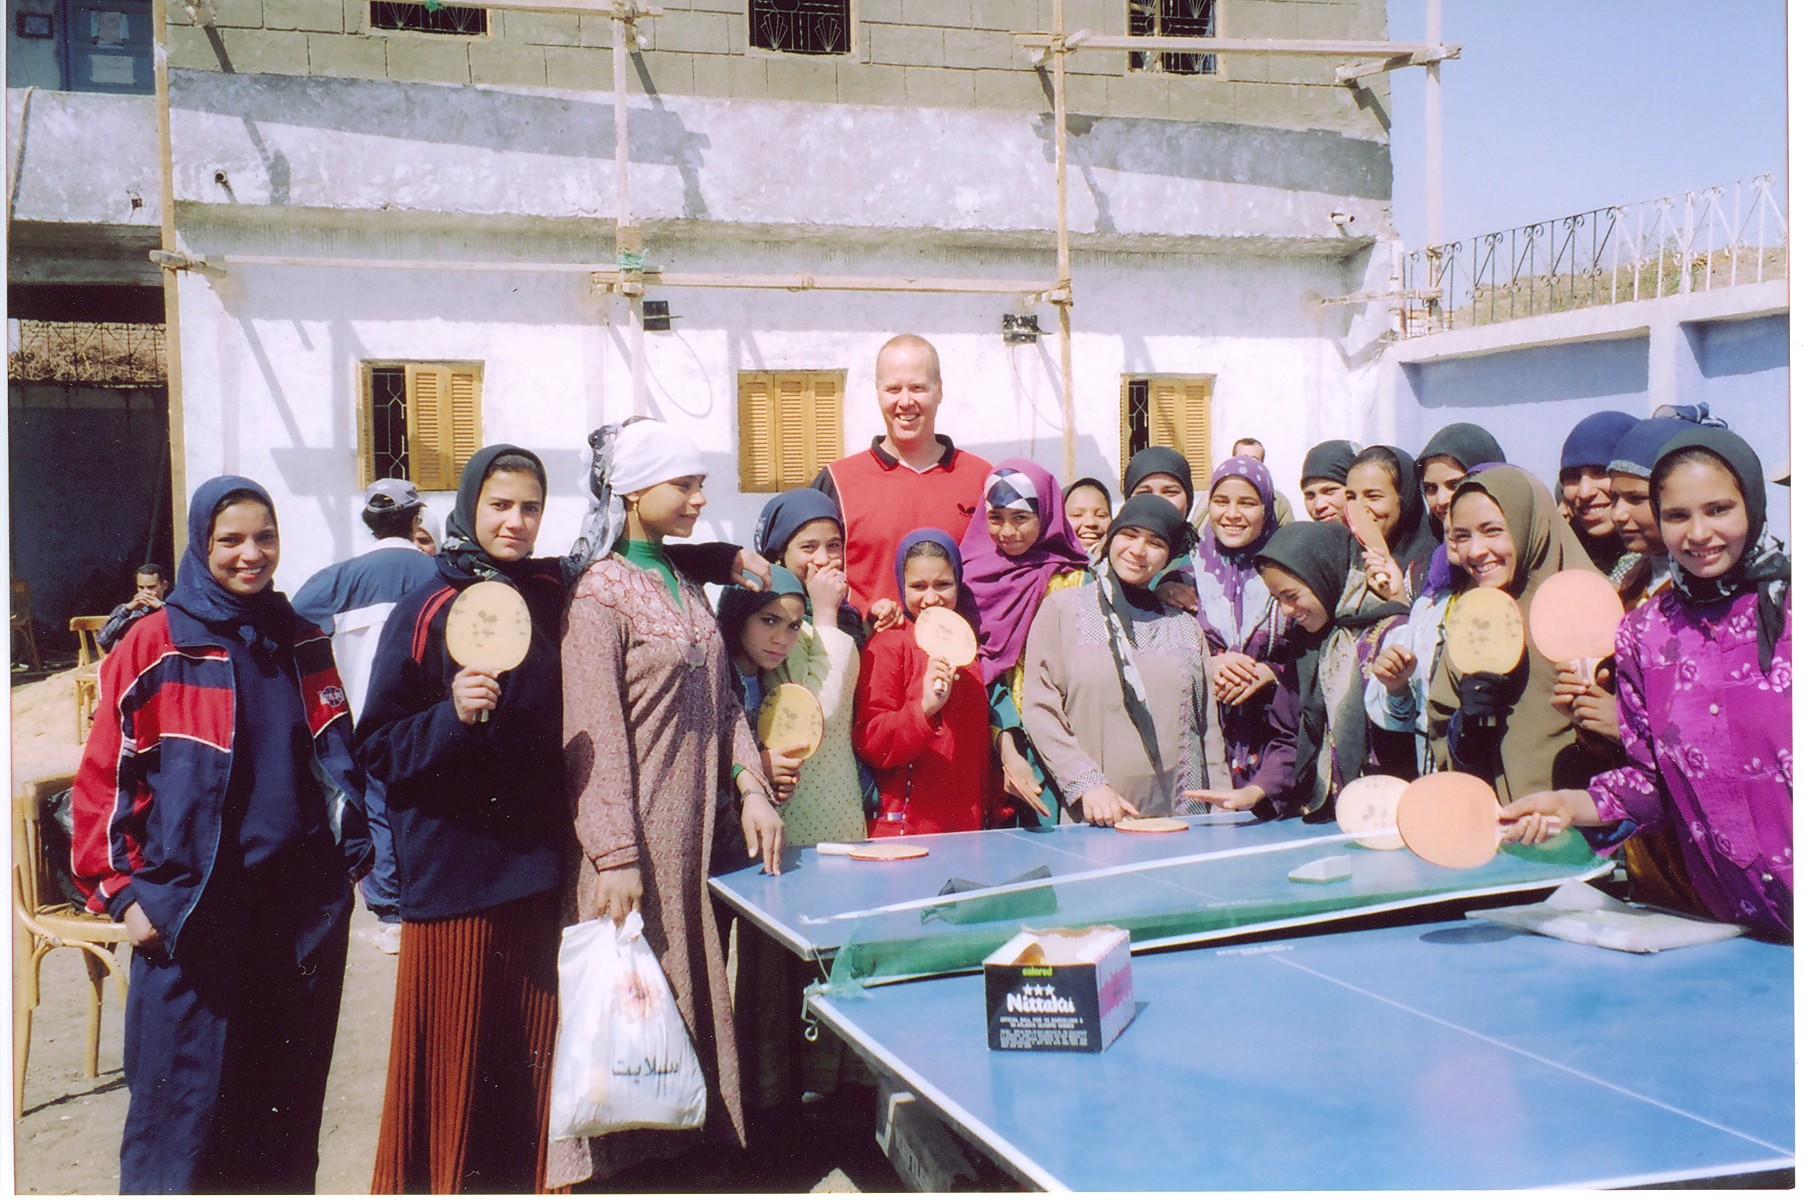 In Egypt in 2003 // photo courtesy Glenn Tepper